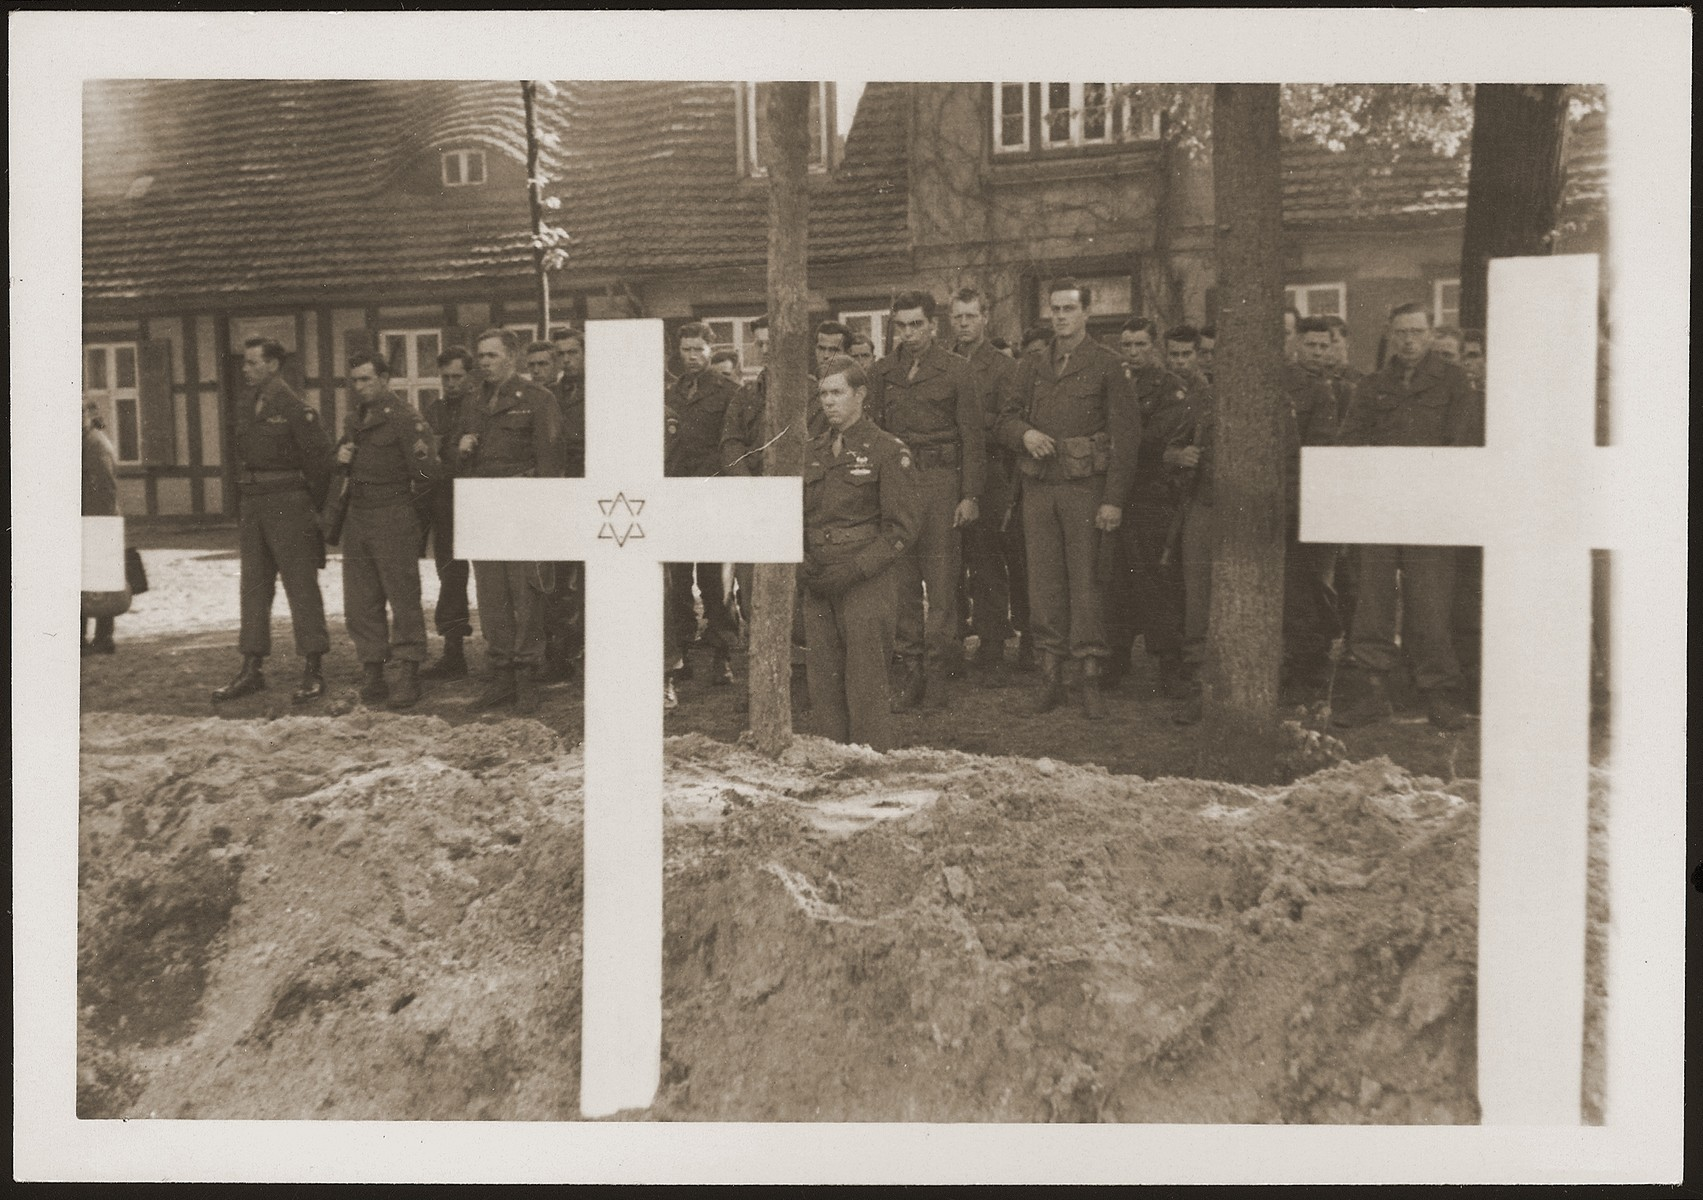 American soldiers observe a moment of silence at a mass funeral on the palace grounds of the Archduke of Mecklenburg, where they forced the townspeople to bury the corpses of prisoners killed in the Woebbelin concentration camp .